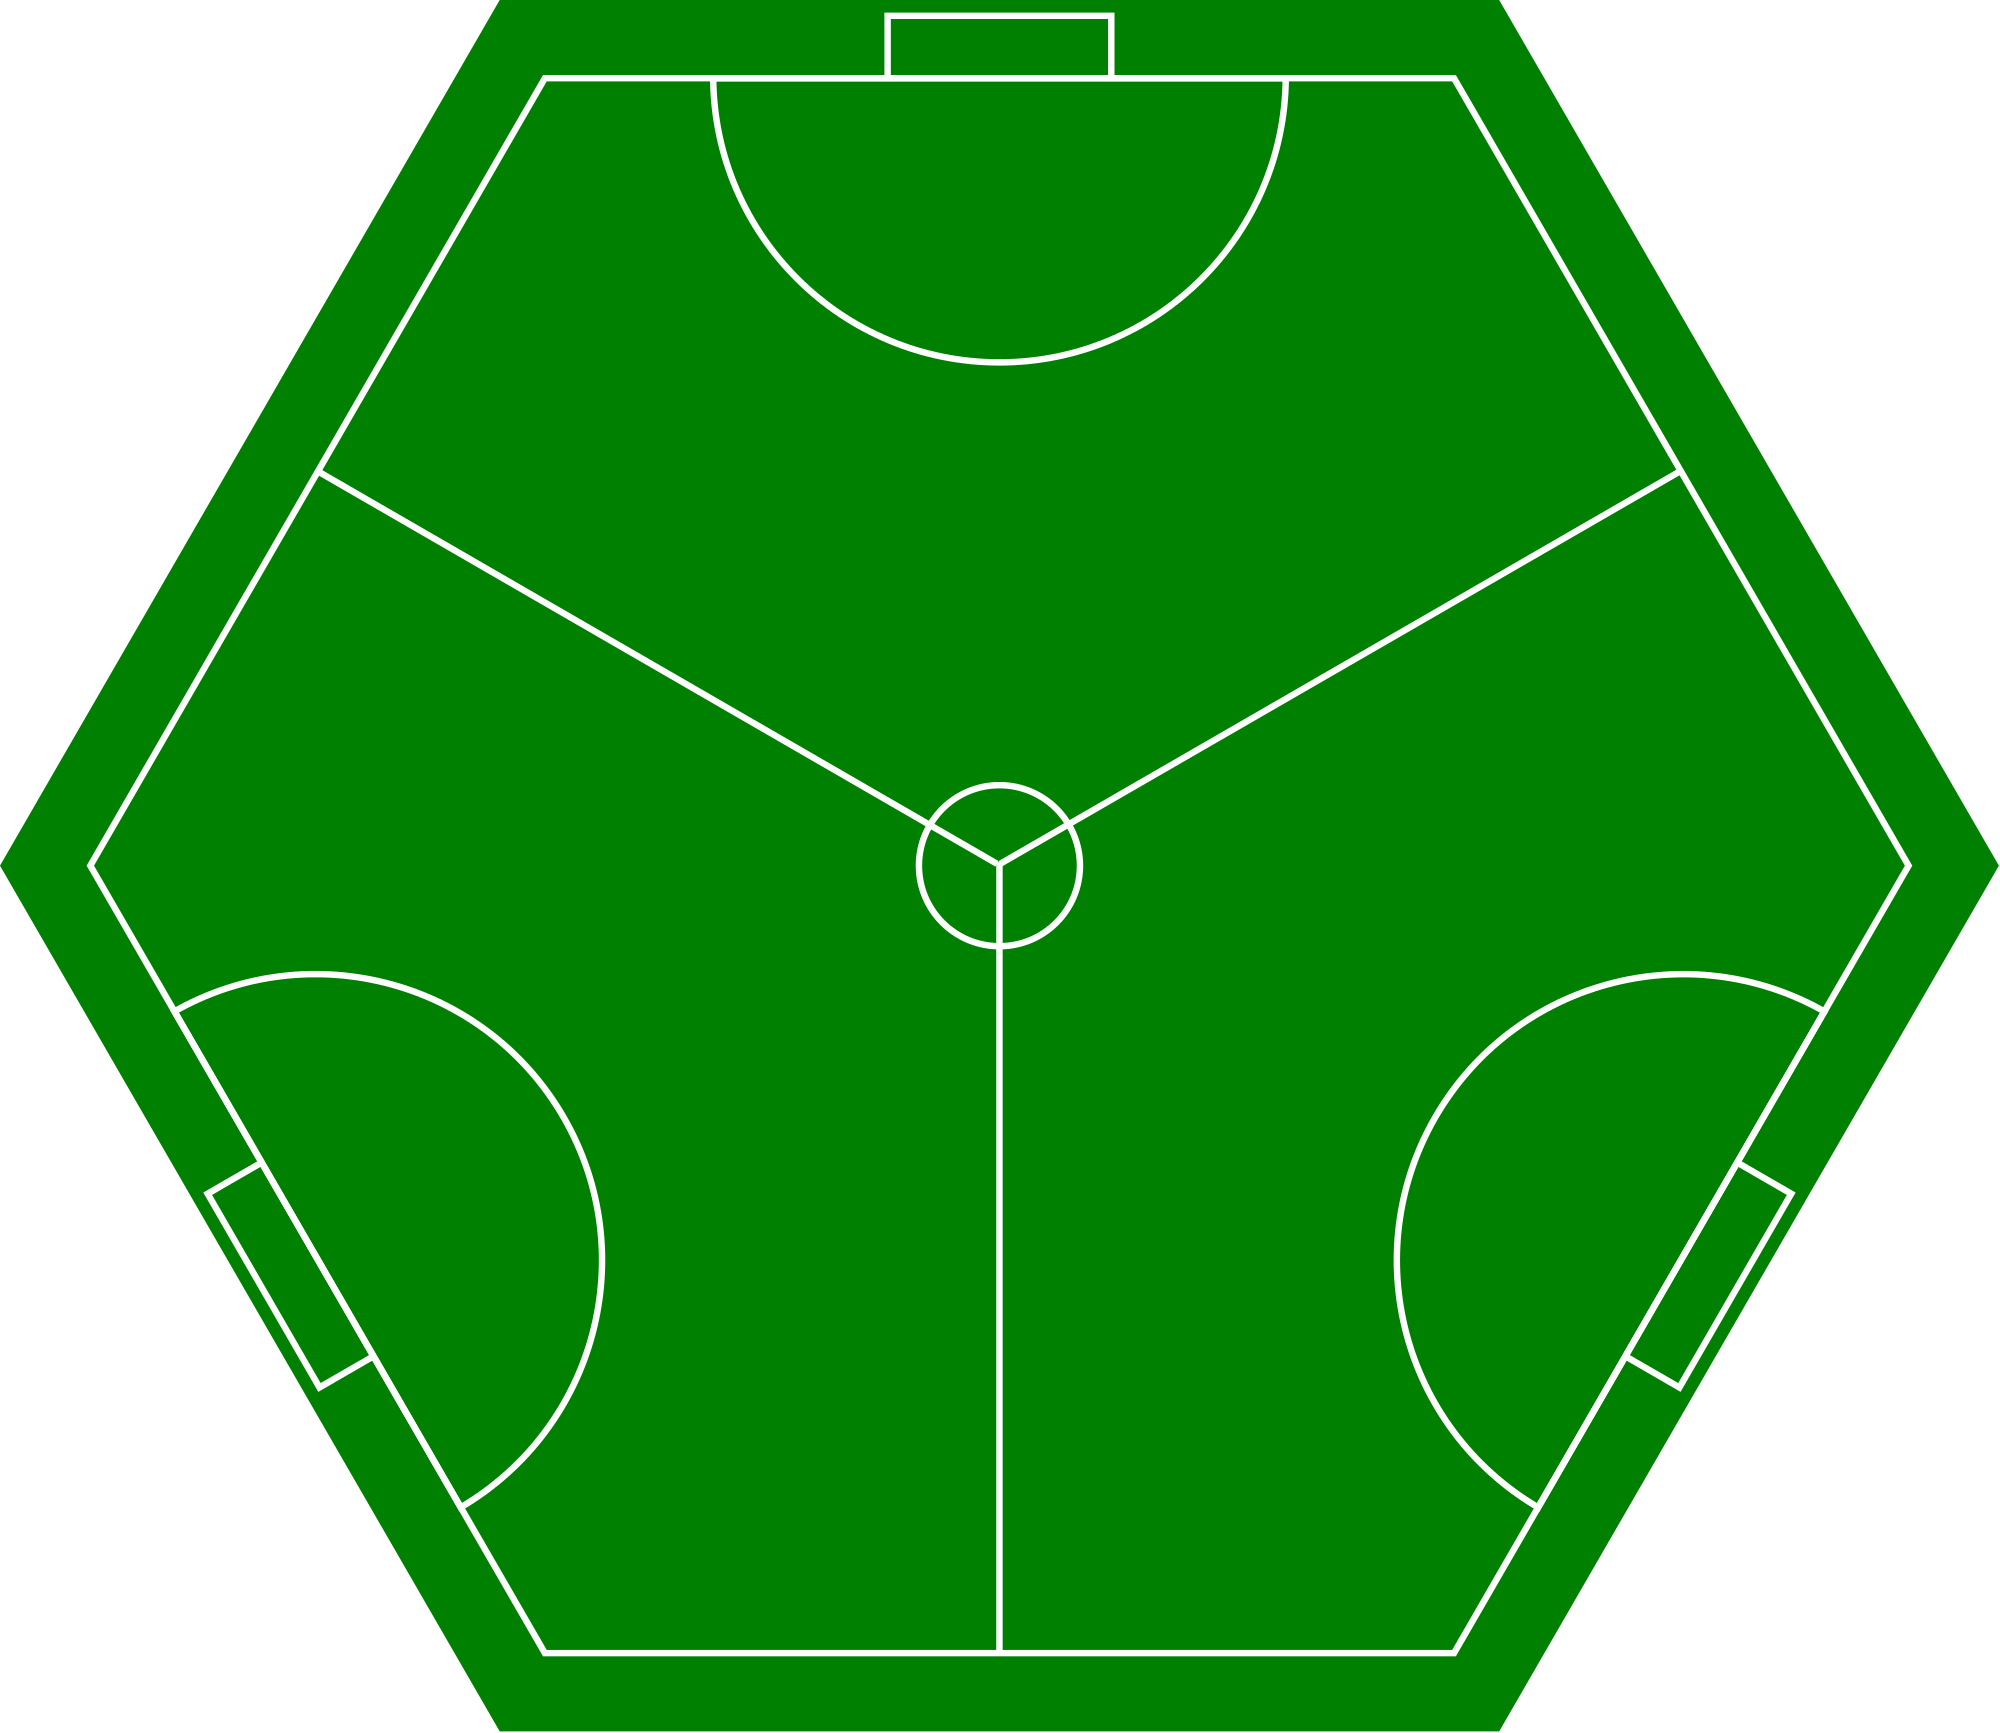 Hexagon clipart sided. File three football pitch